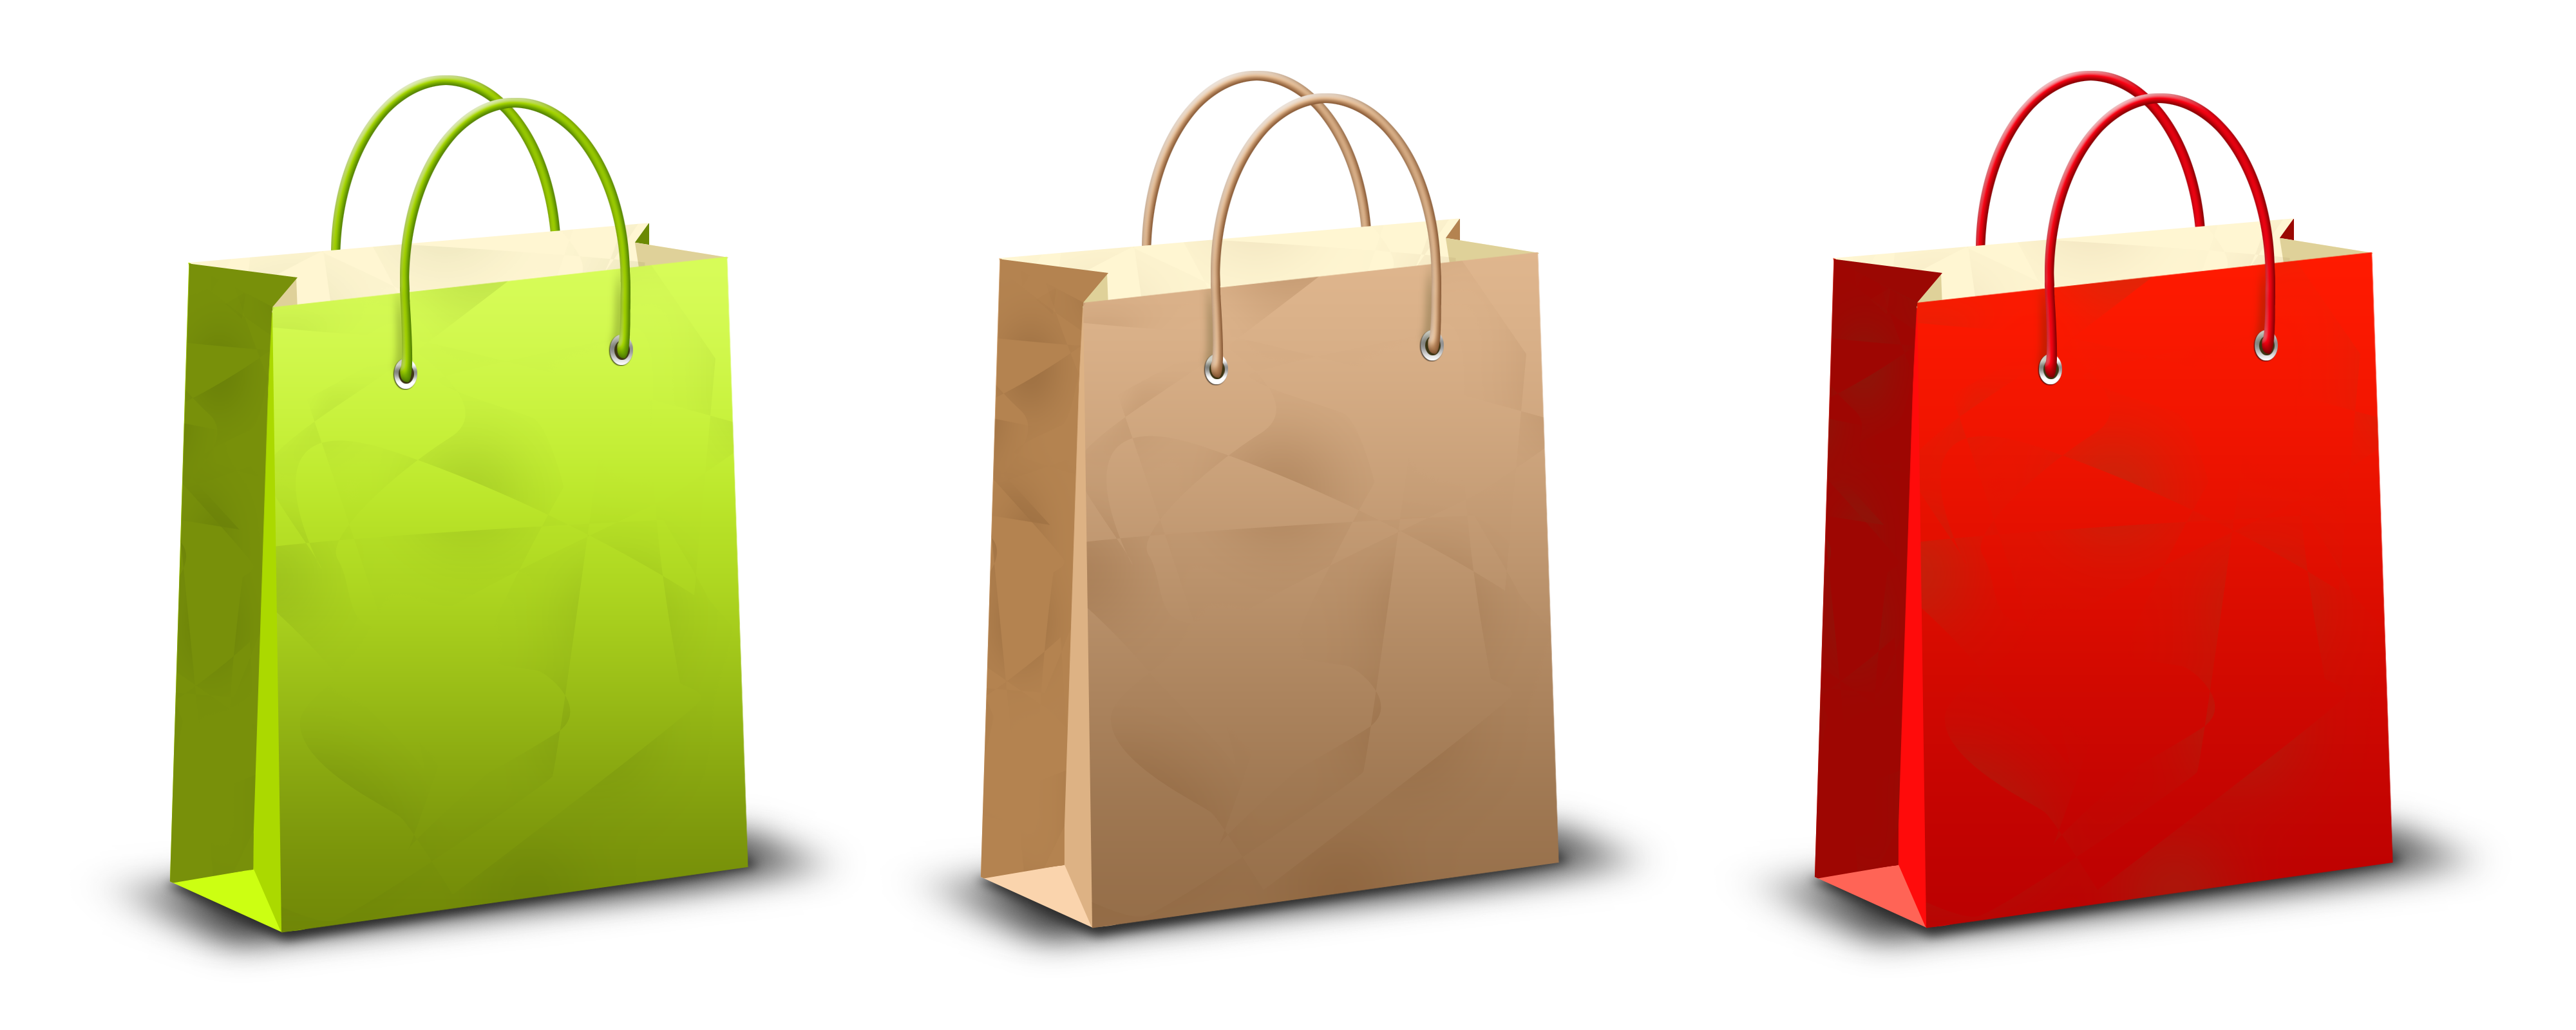 Download Free High-quality Bag Png Transparent Images image #33930